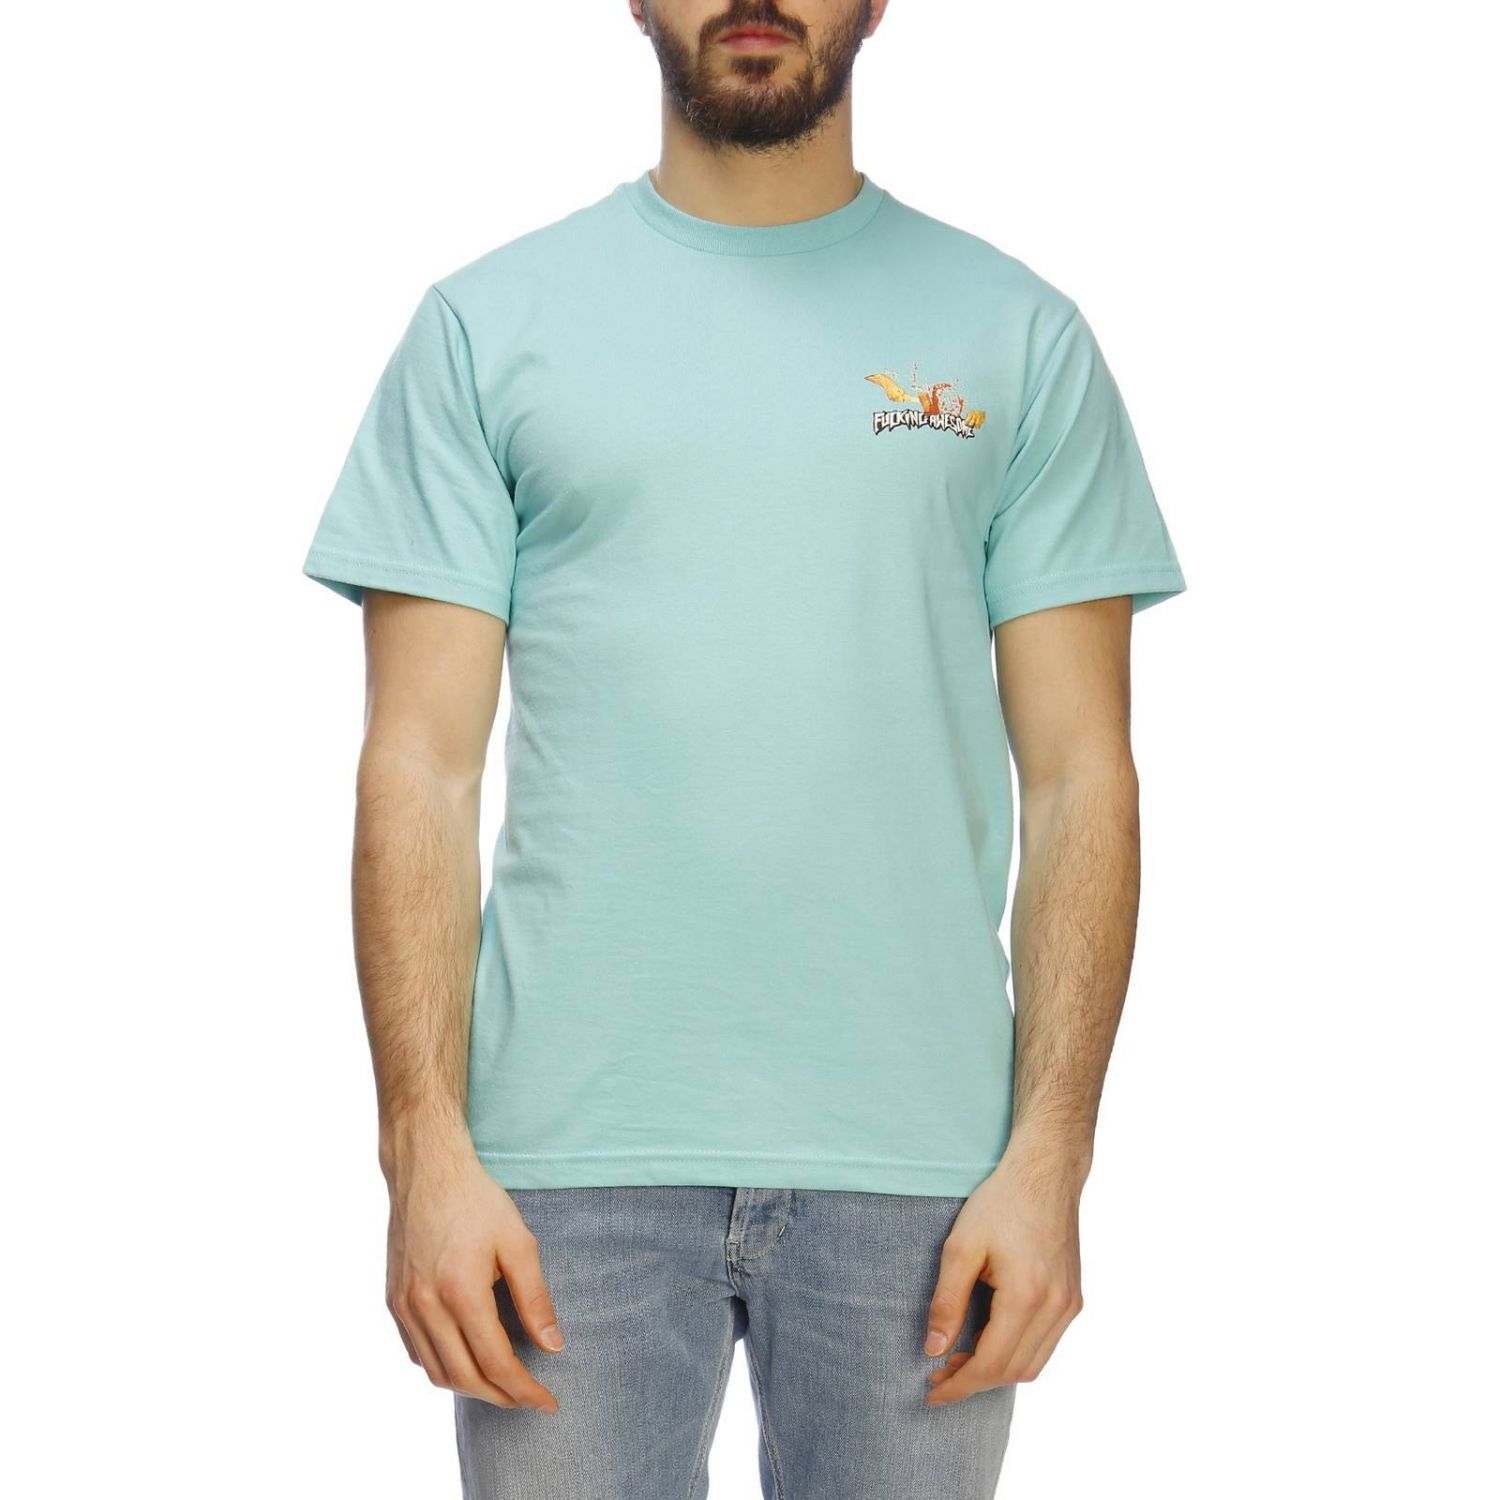 Camiseta hombre Fucking Awesome menta 1